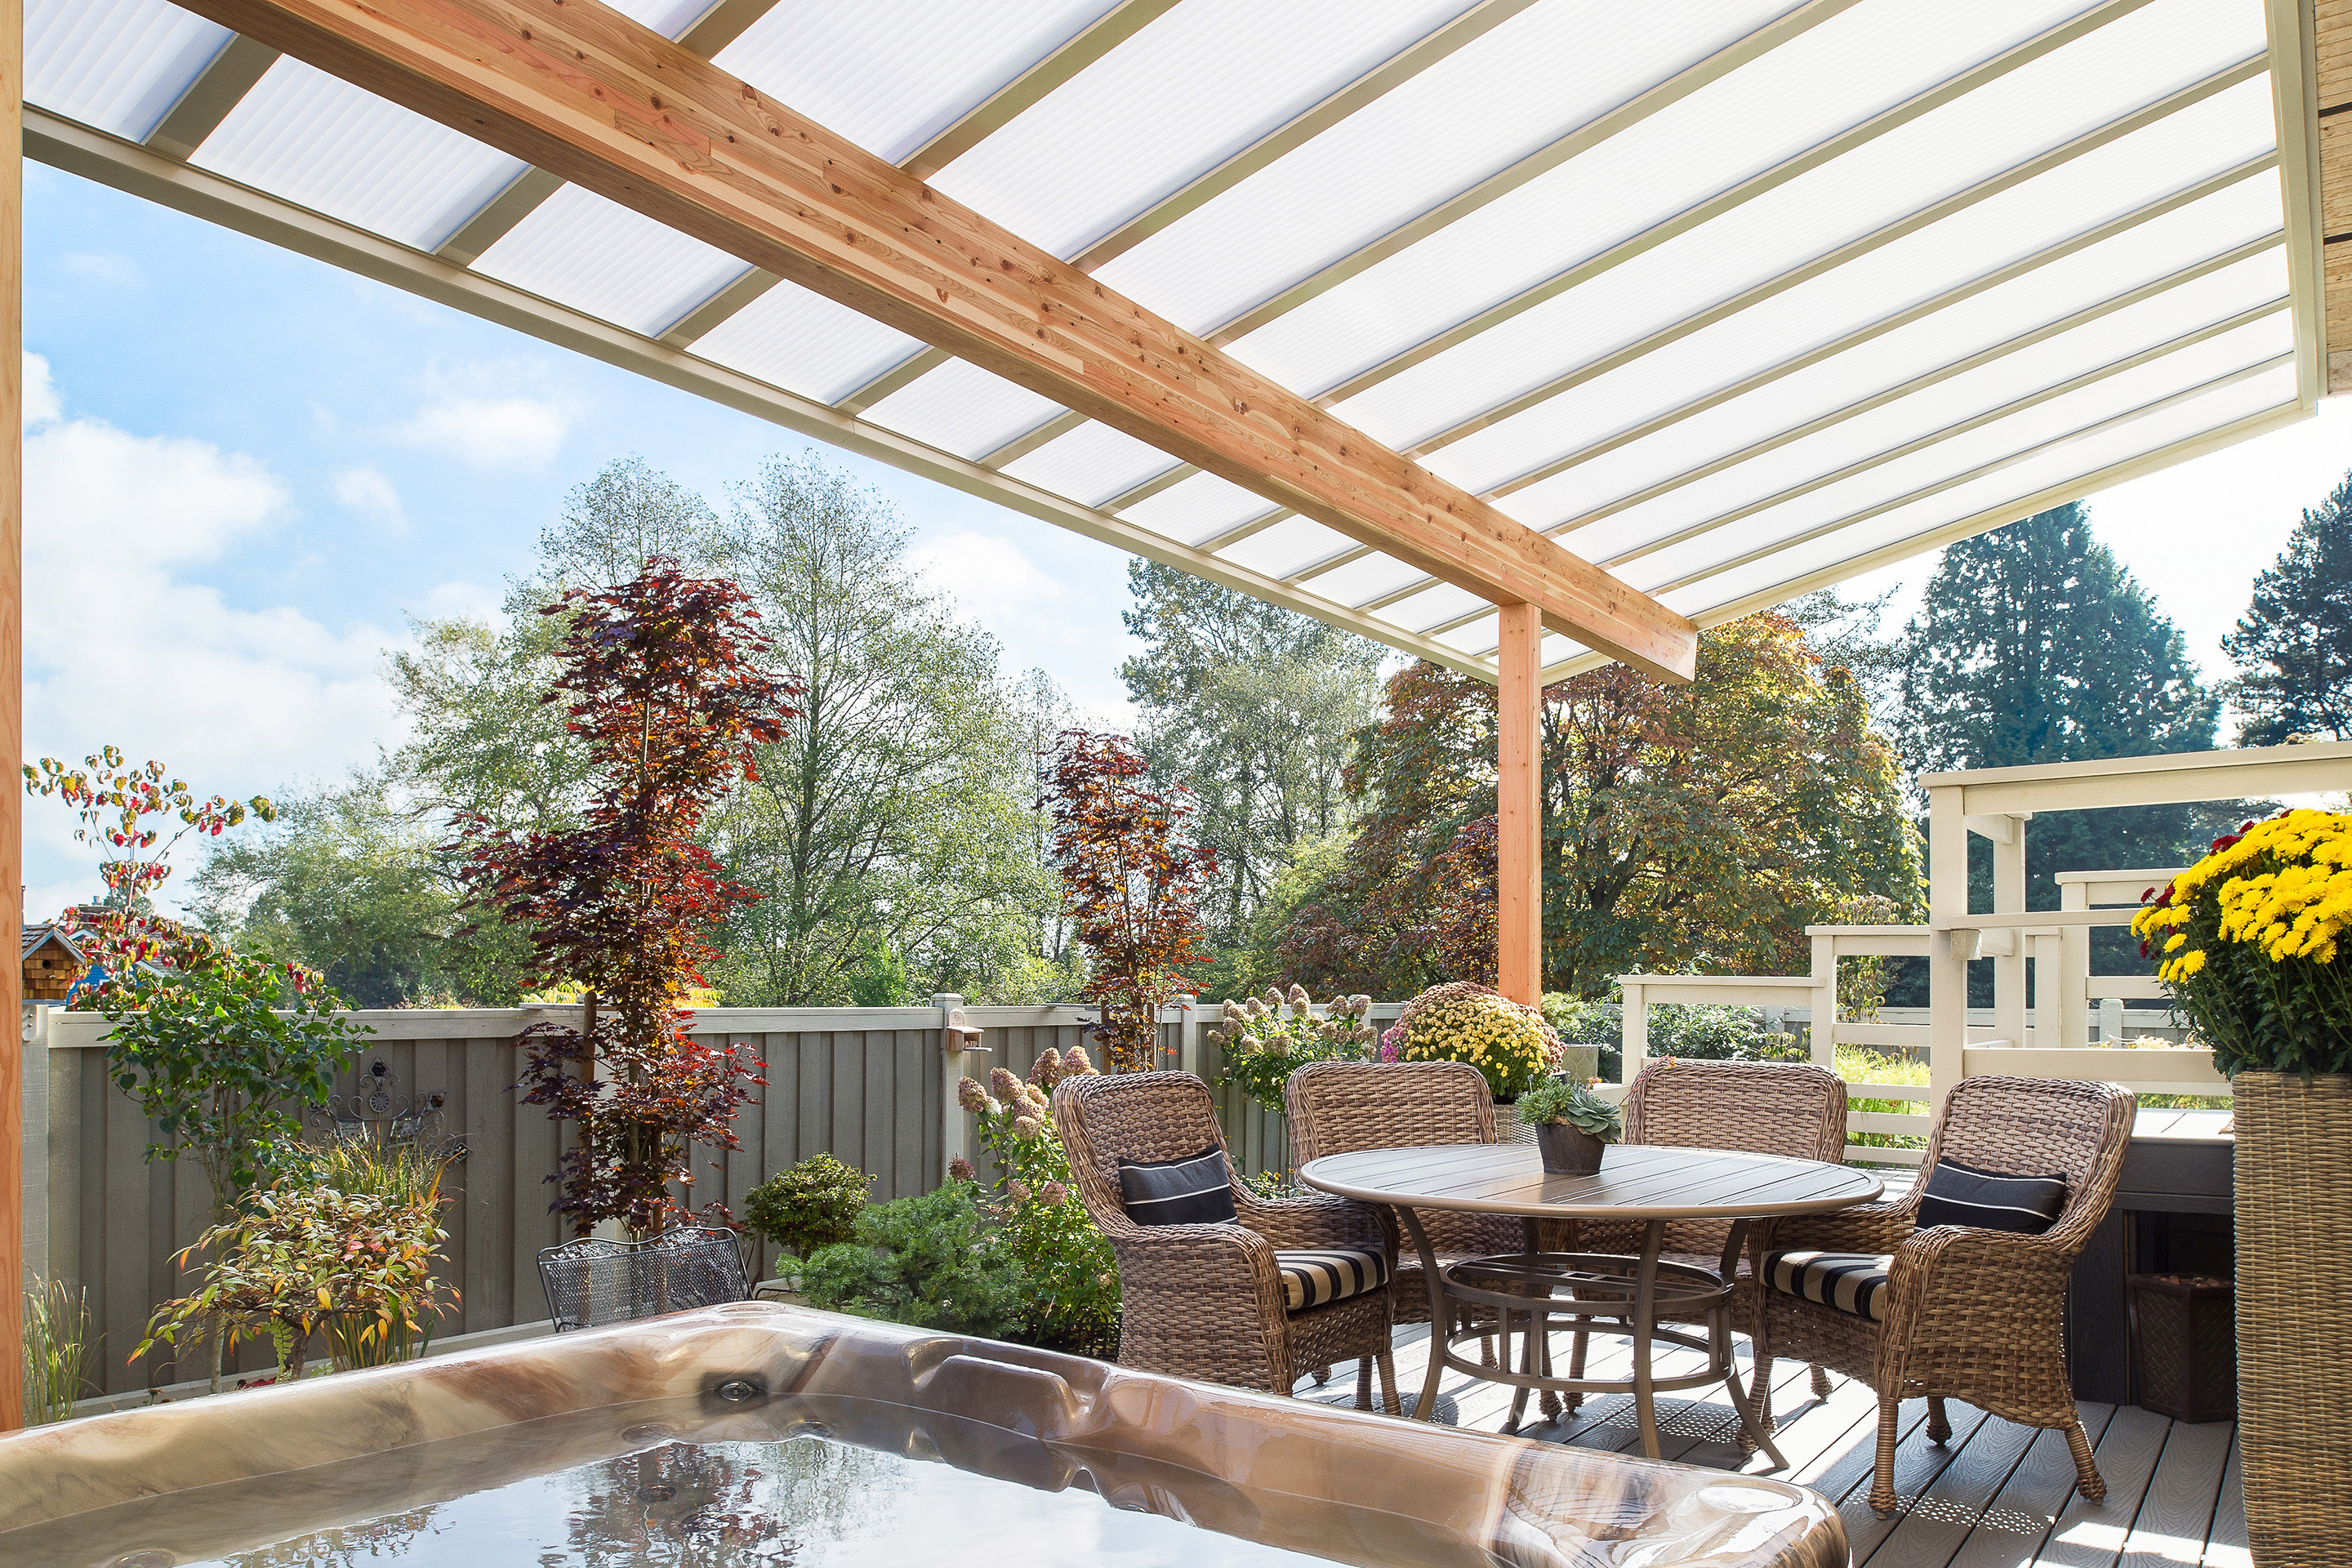 lumon canada, patio cover vancouver, patio cover toronto, patio cover hamilton